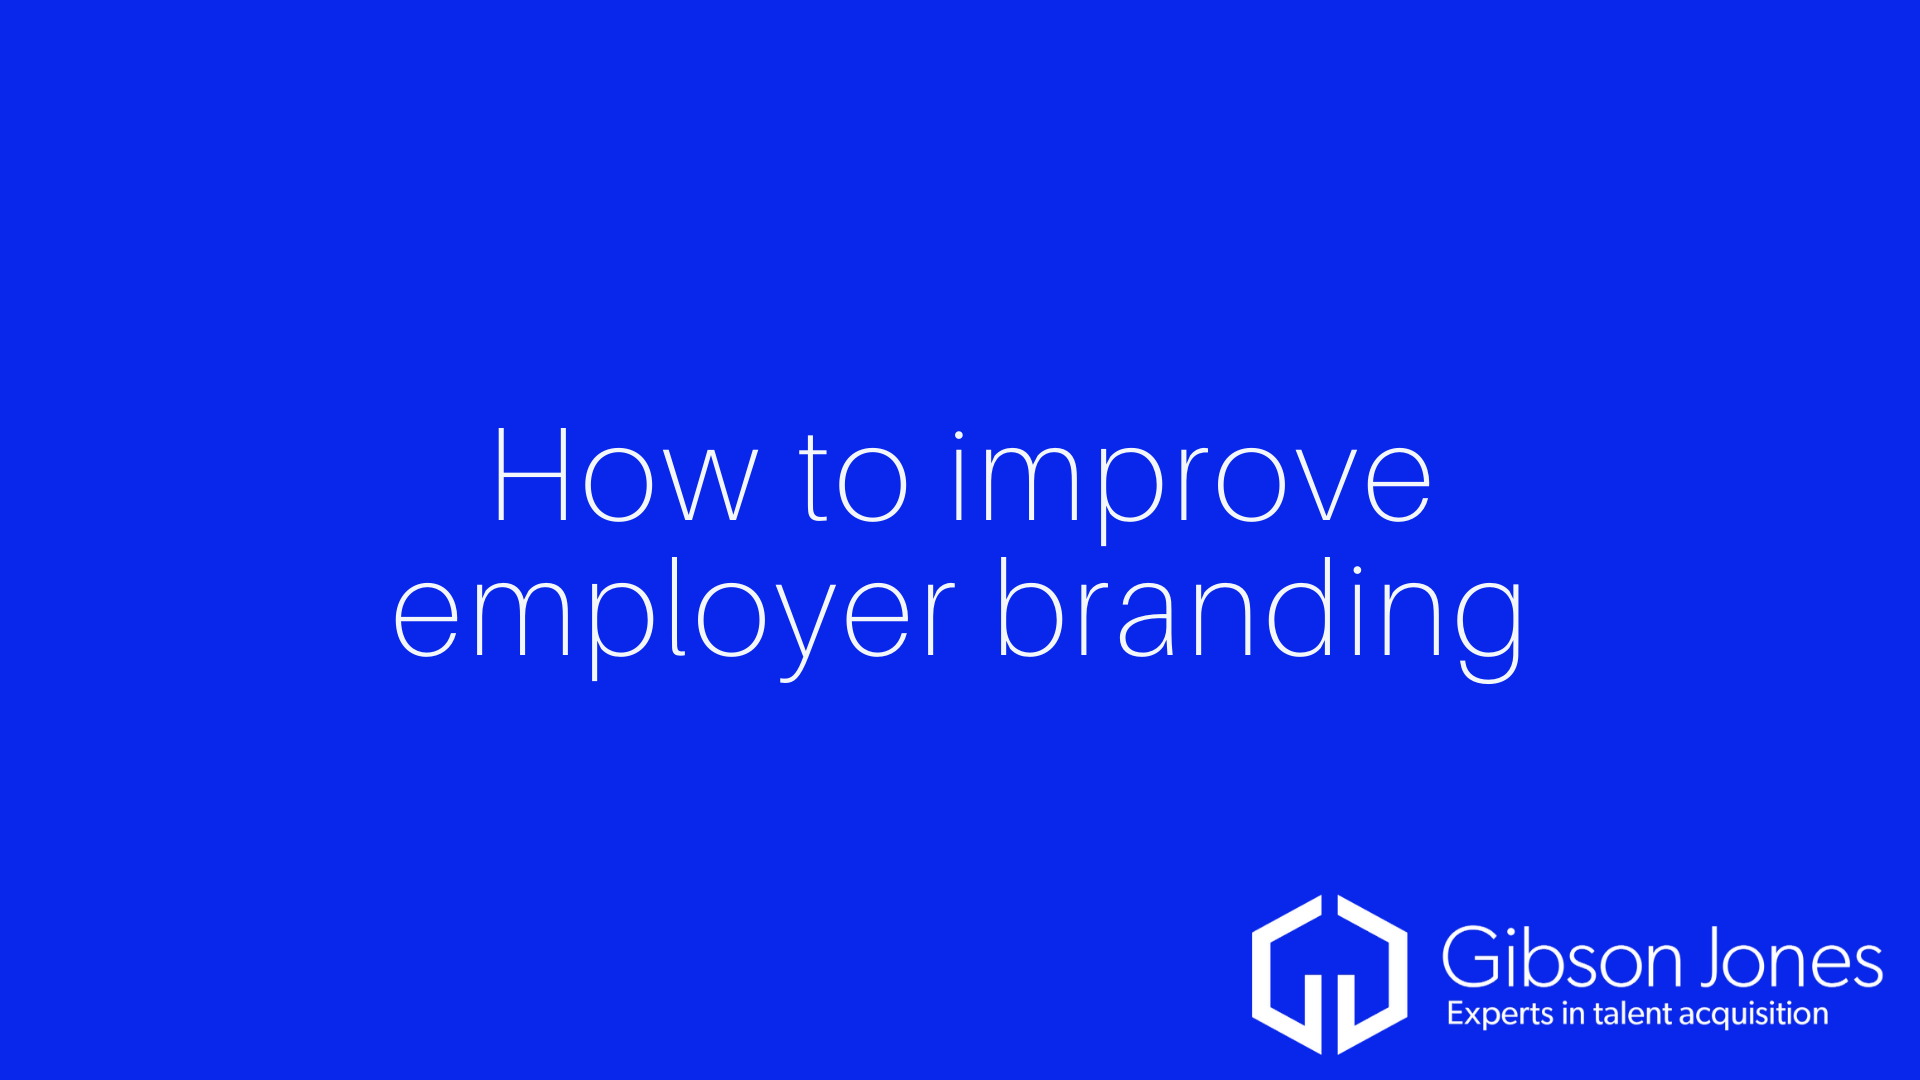 How to improve employer branding